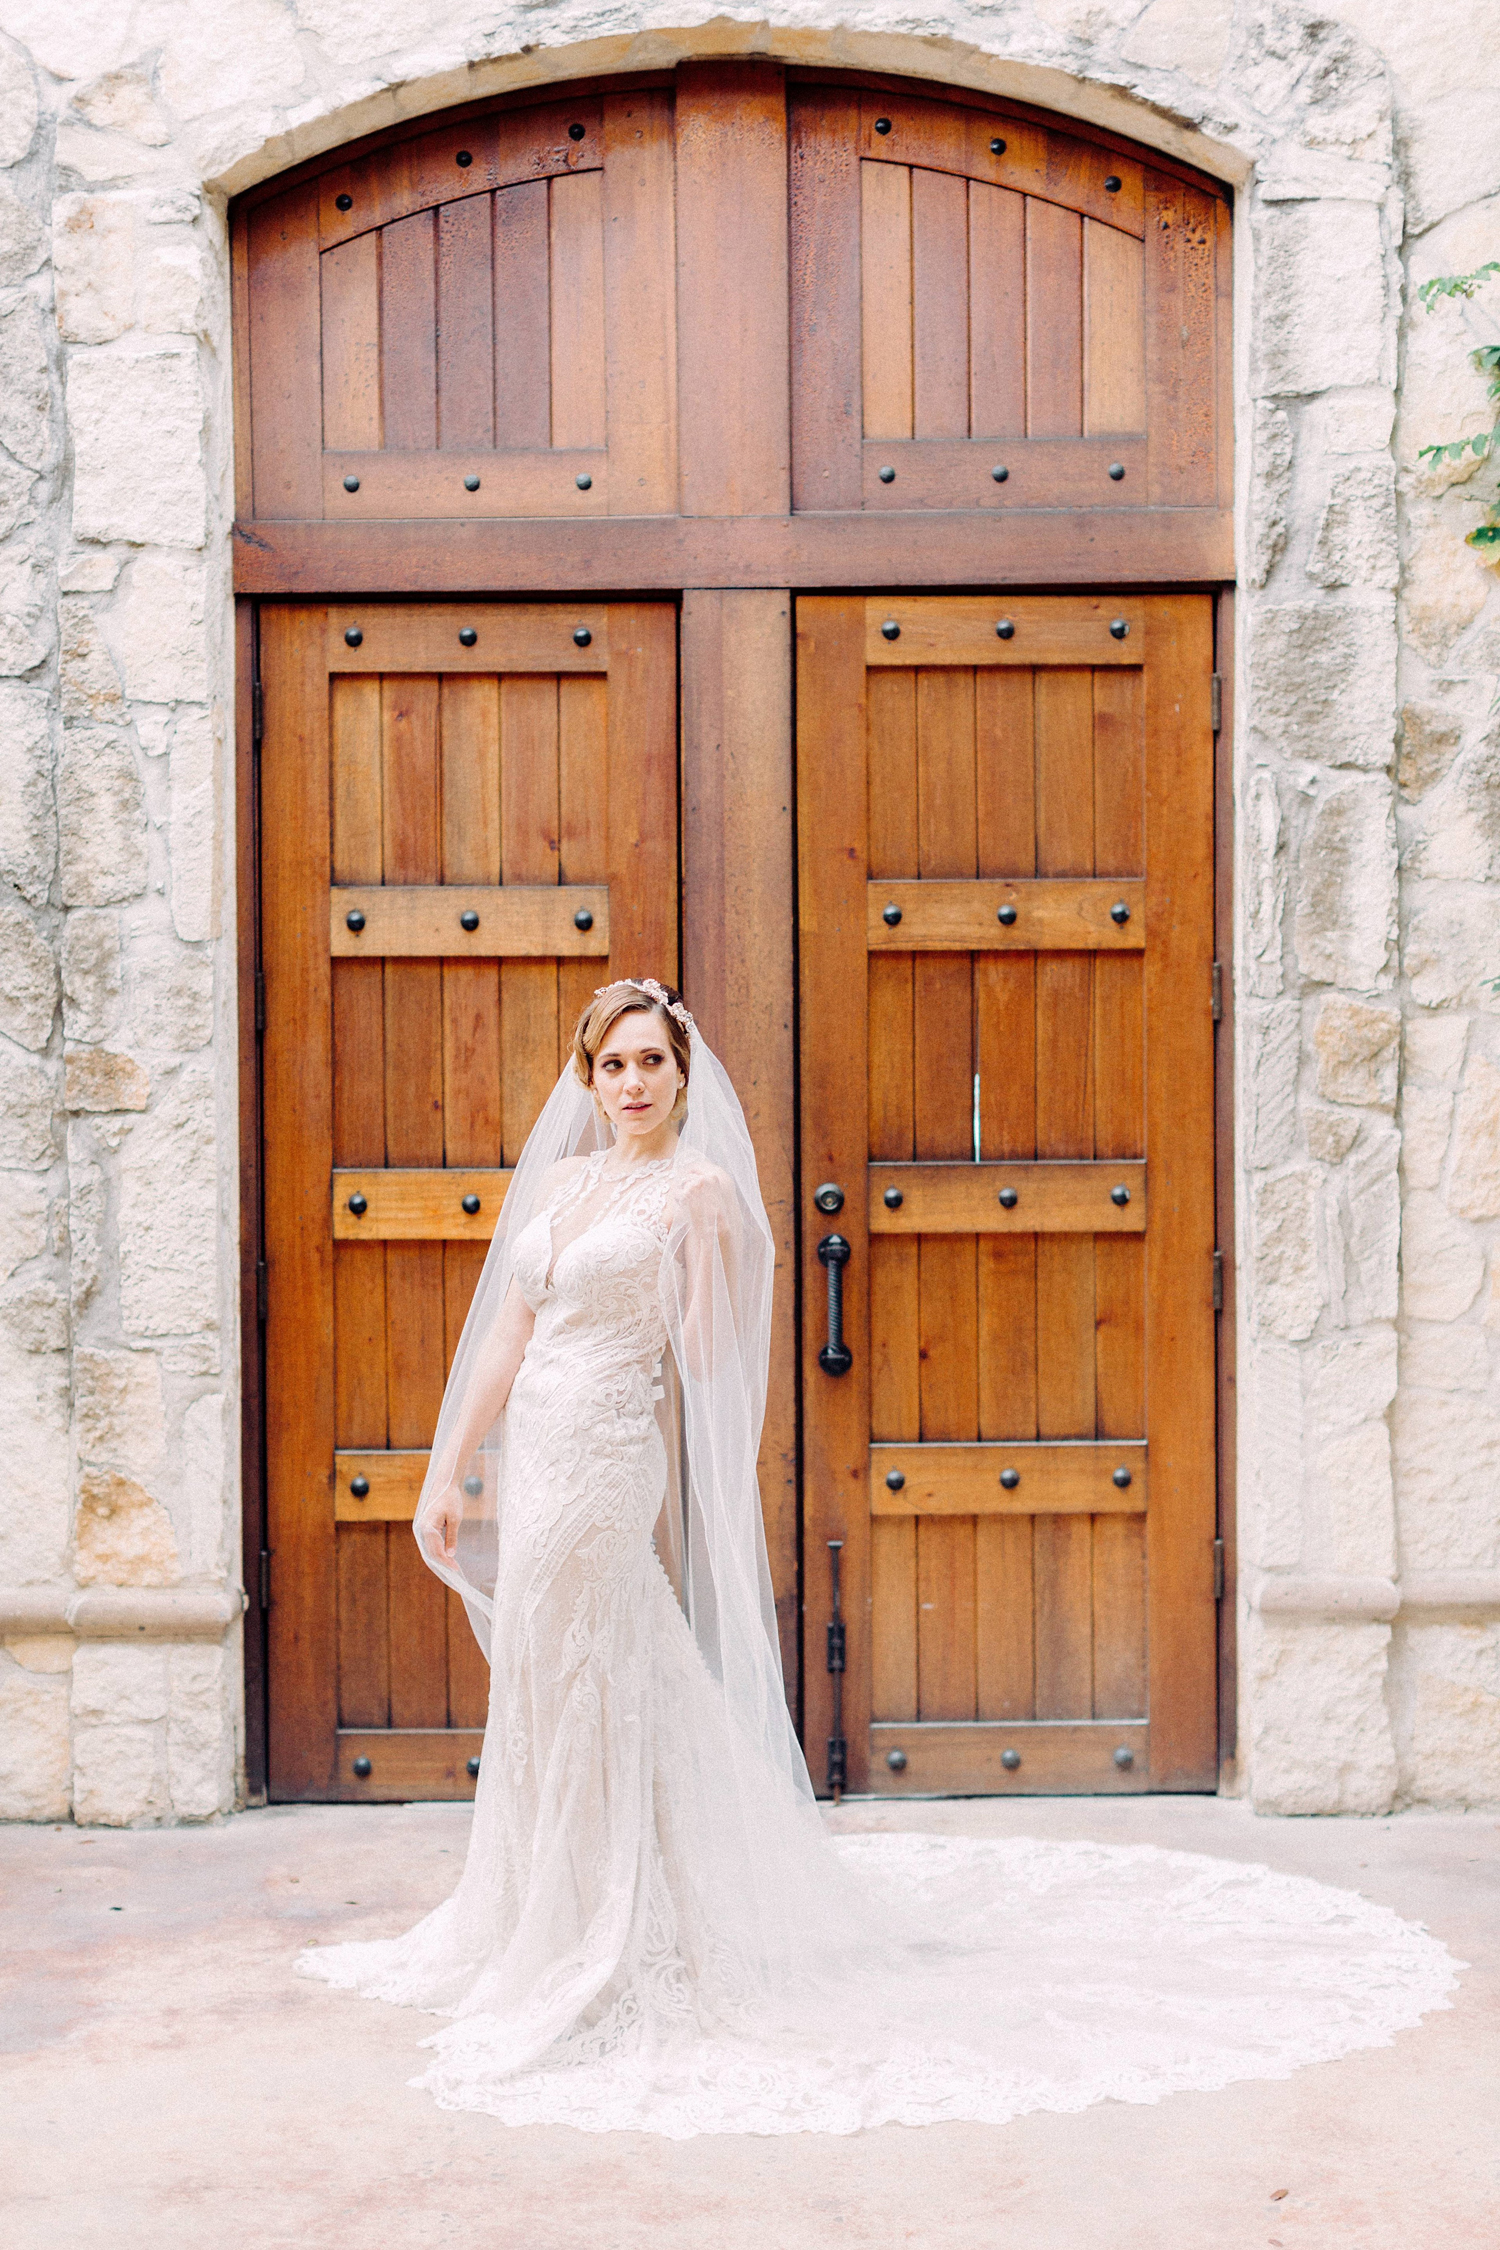 028-alaamarzouk-alaamarzoukphotography-mcallenweddingphotographer-alaa-marzouk-mcallen-mission-wedding-texas-venue-photography-wedding-california-bride-bridal-engagement-austin-elopement.jpg